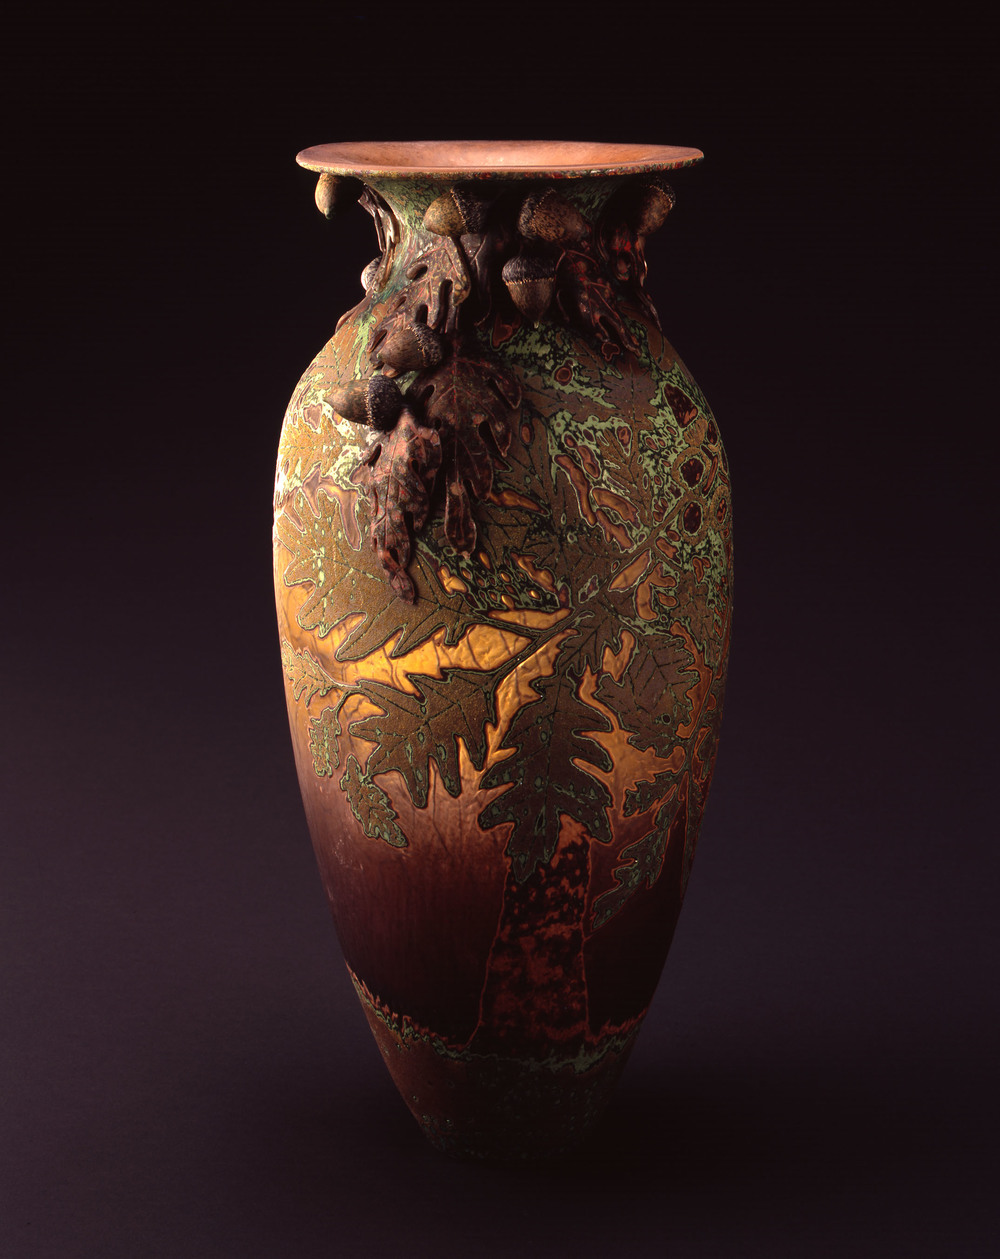 William Morris,  Vase with Oak Leaves and Acorns    (2004, glass, 18 1/4 x 8 x 8 inches), WM.44